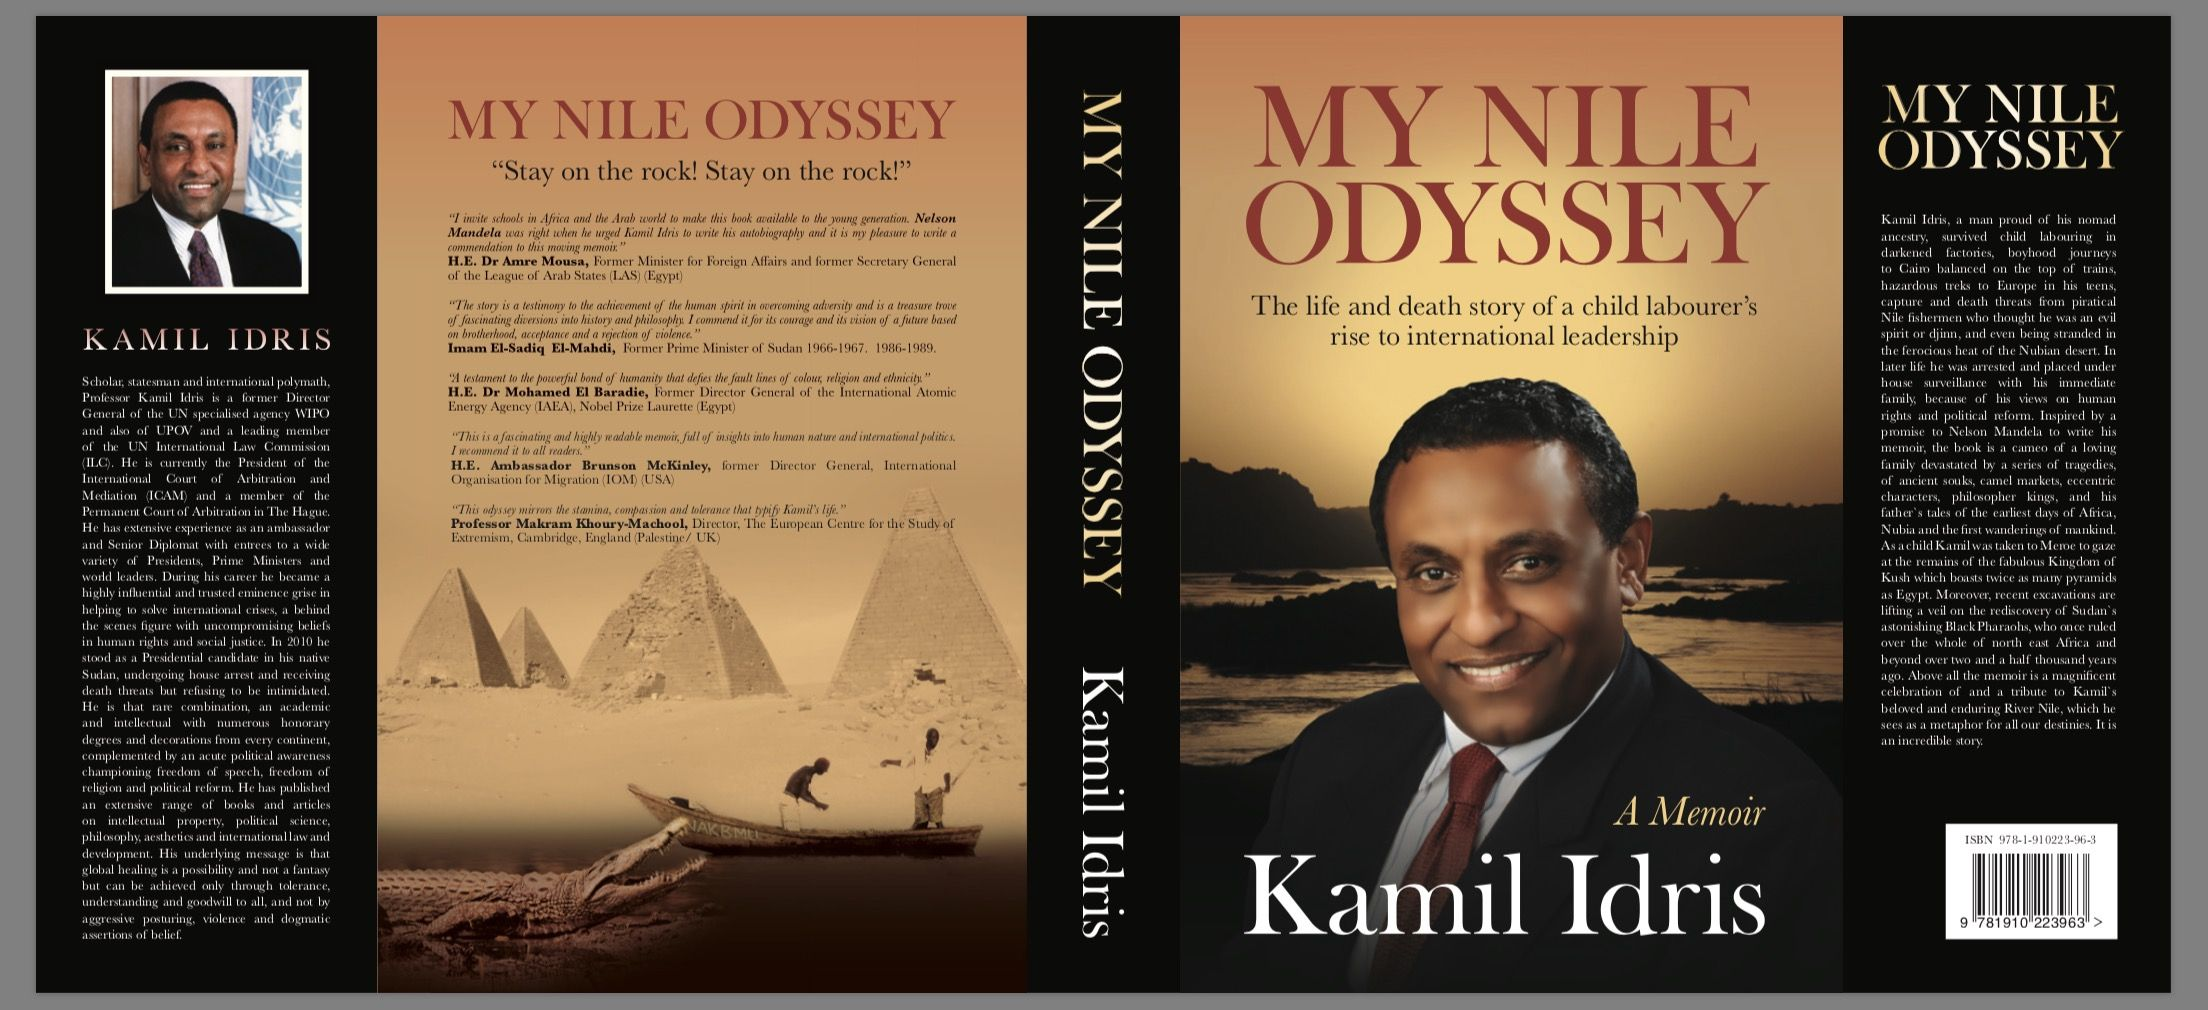 Former Director General of the World Intellectual Property Organisation (WIPO) and former presidential candidate in Sudan releases new book.